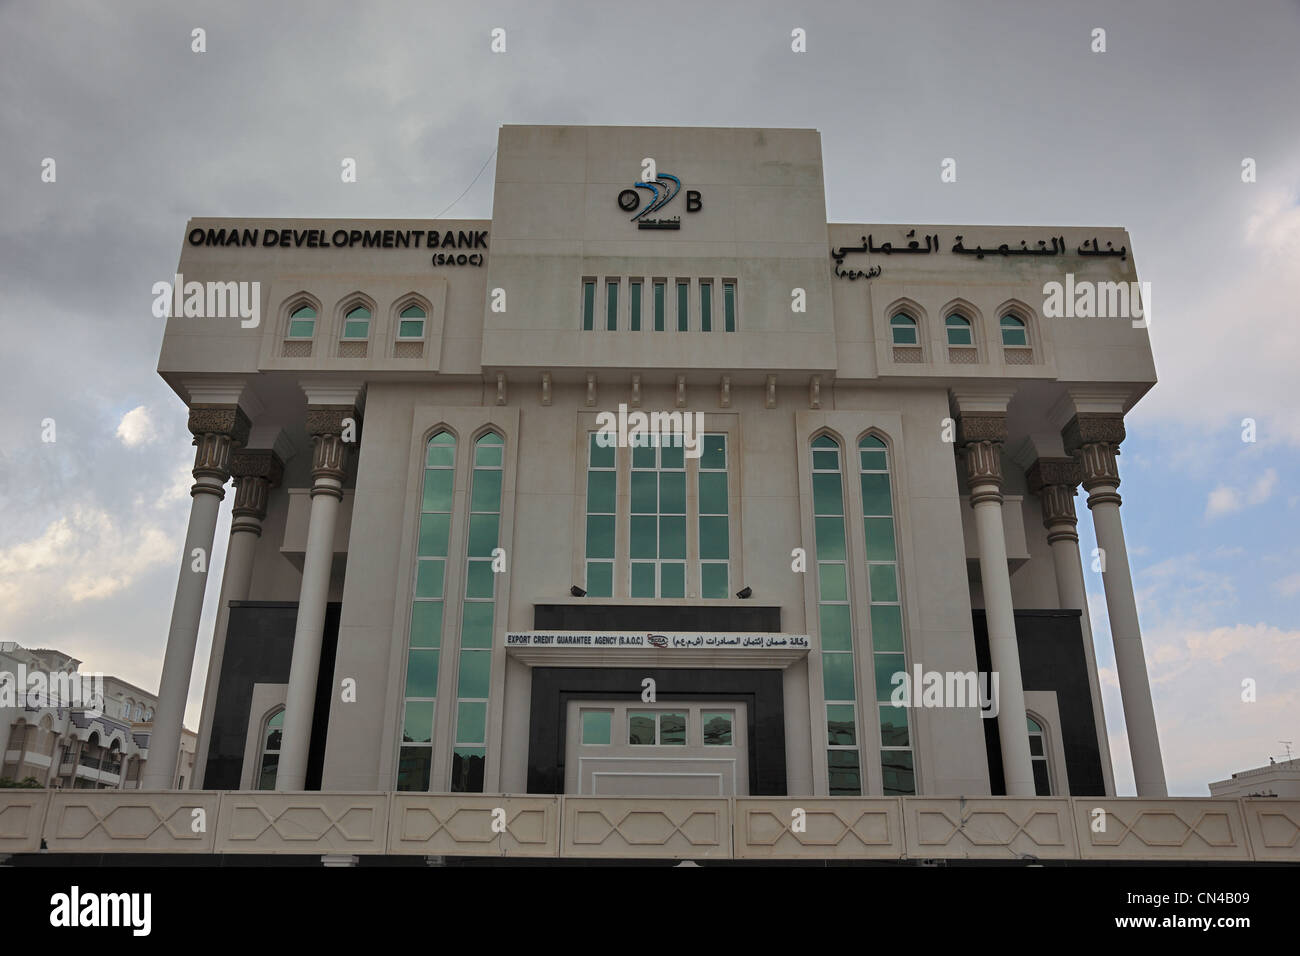 Die Oman Development Bank - Stock Image